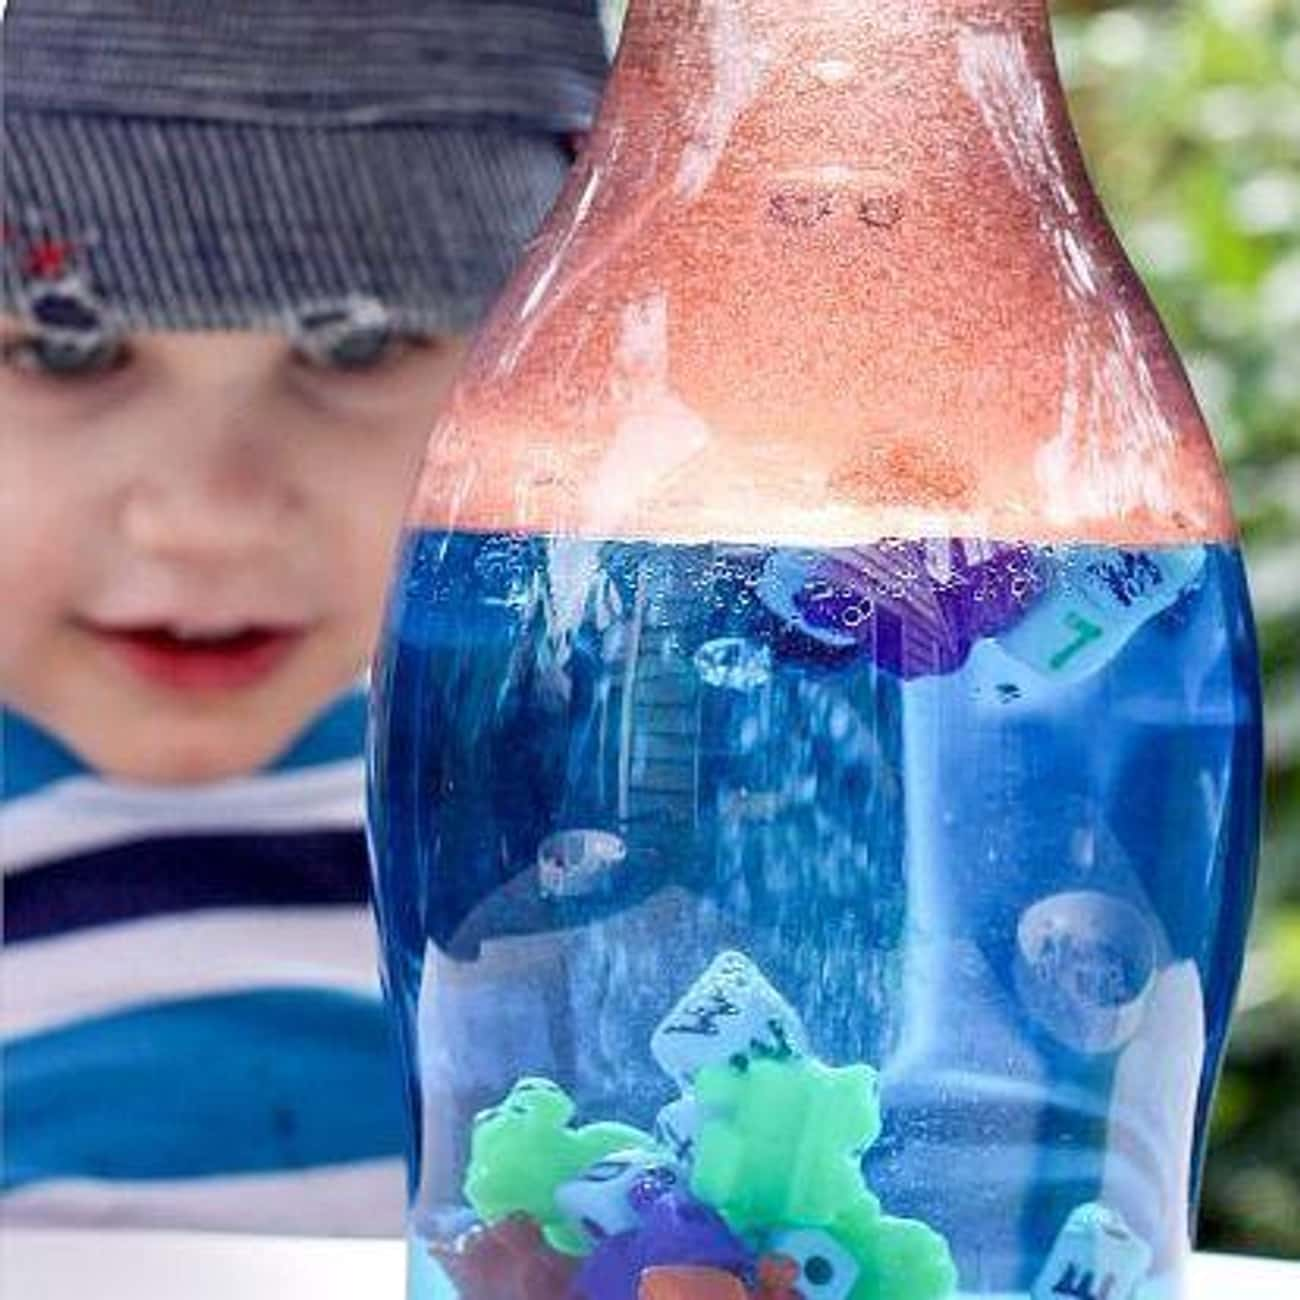 Create Oil And Water Discovery is listed (or ranked) 4 on the list Good Activities for 4 Year Olds